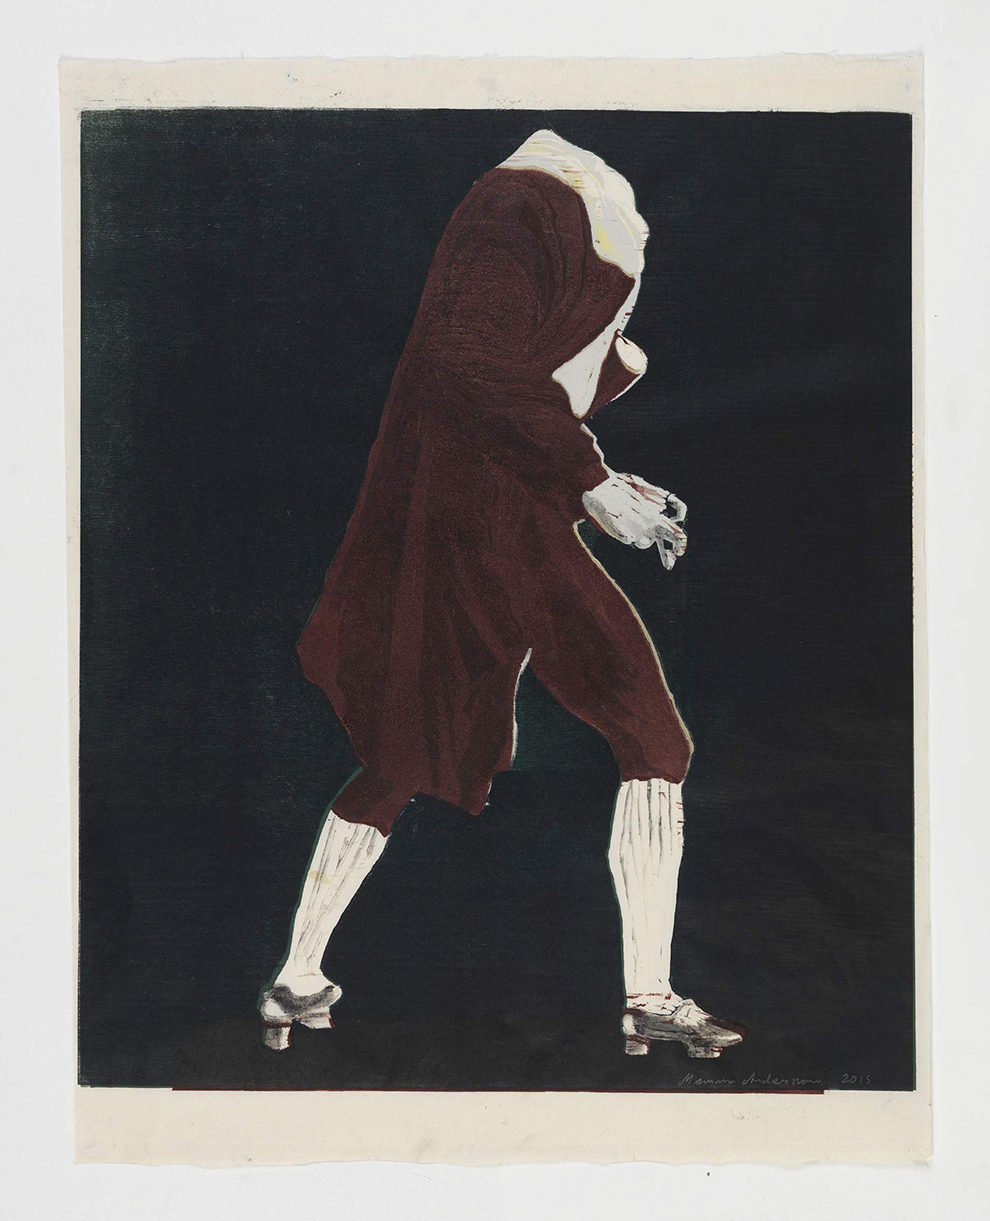 Mamma Andersson,   Headless Man in Jacket , 2015, hand printed colour woodcut on rice paper, monotype, 65 x 50cm